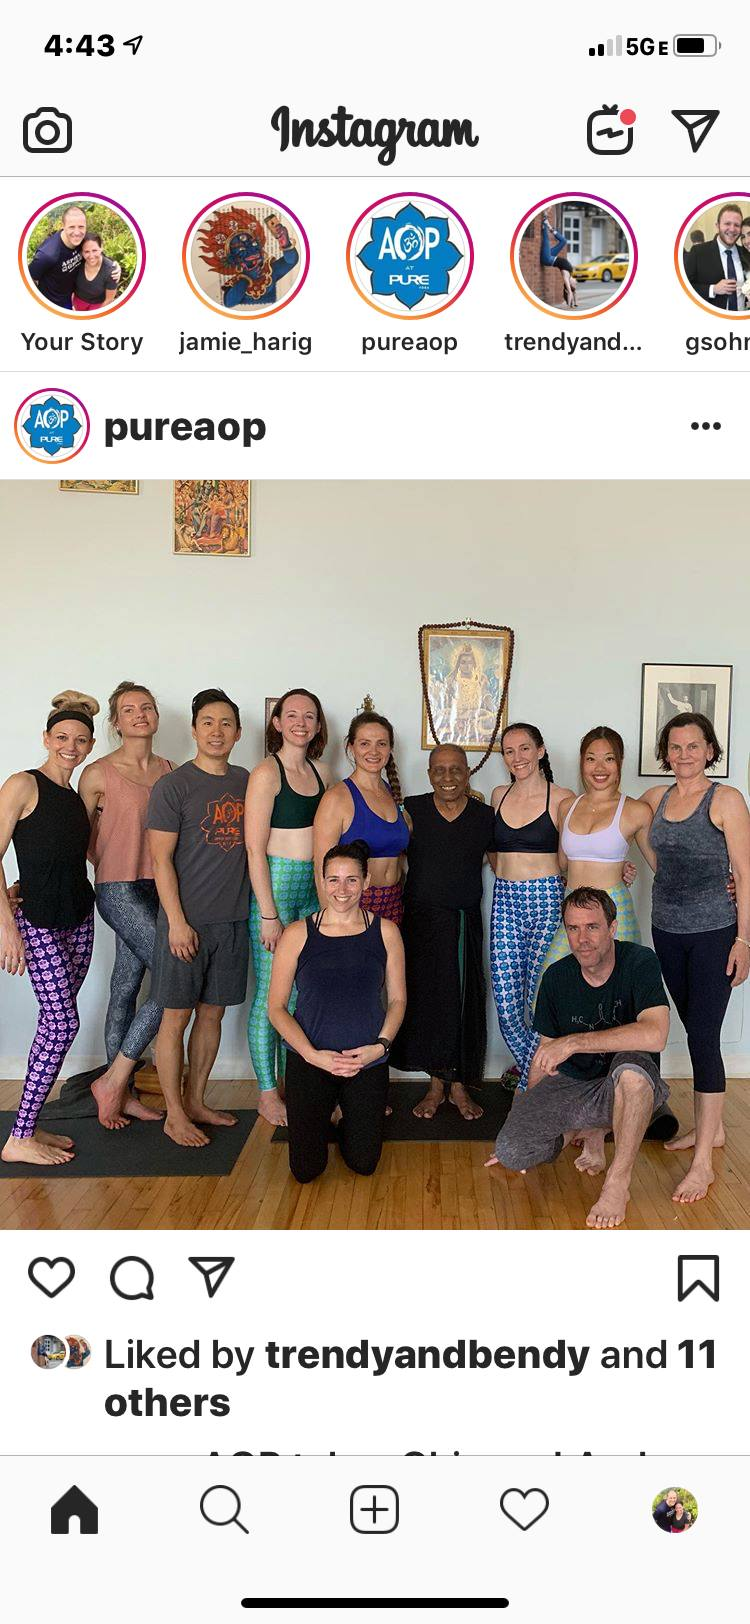 Ashtanga Yoga as a Therapeutic & Life-long Journey with Manju Jois and members of AOP at Chicago Yoga Center, in June 2019.